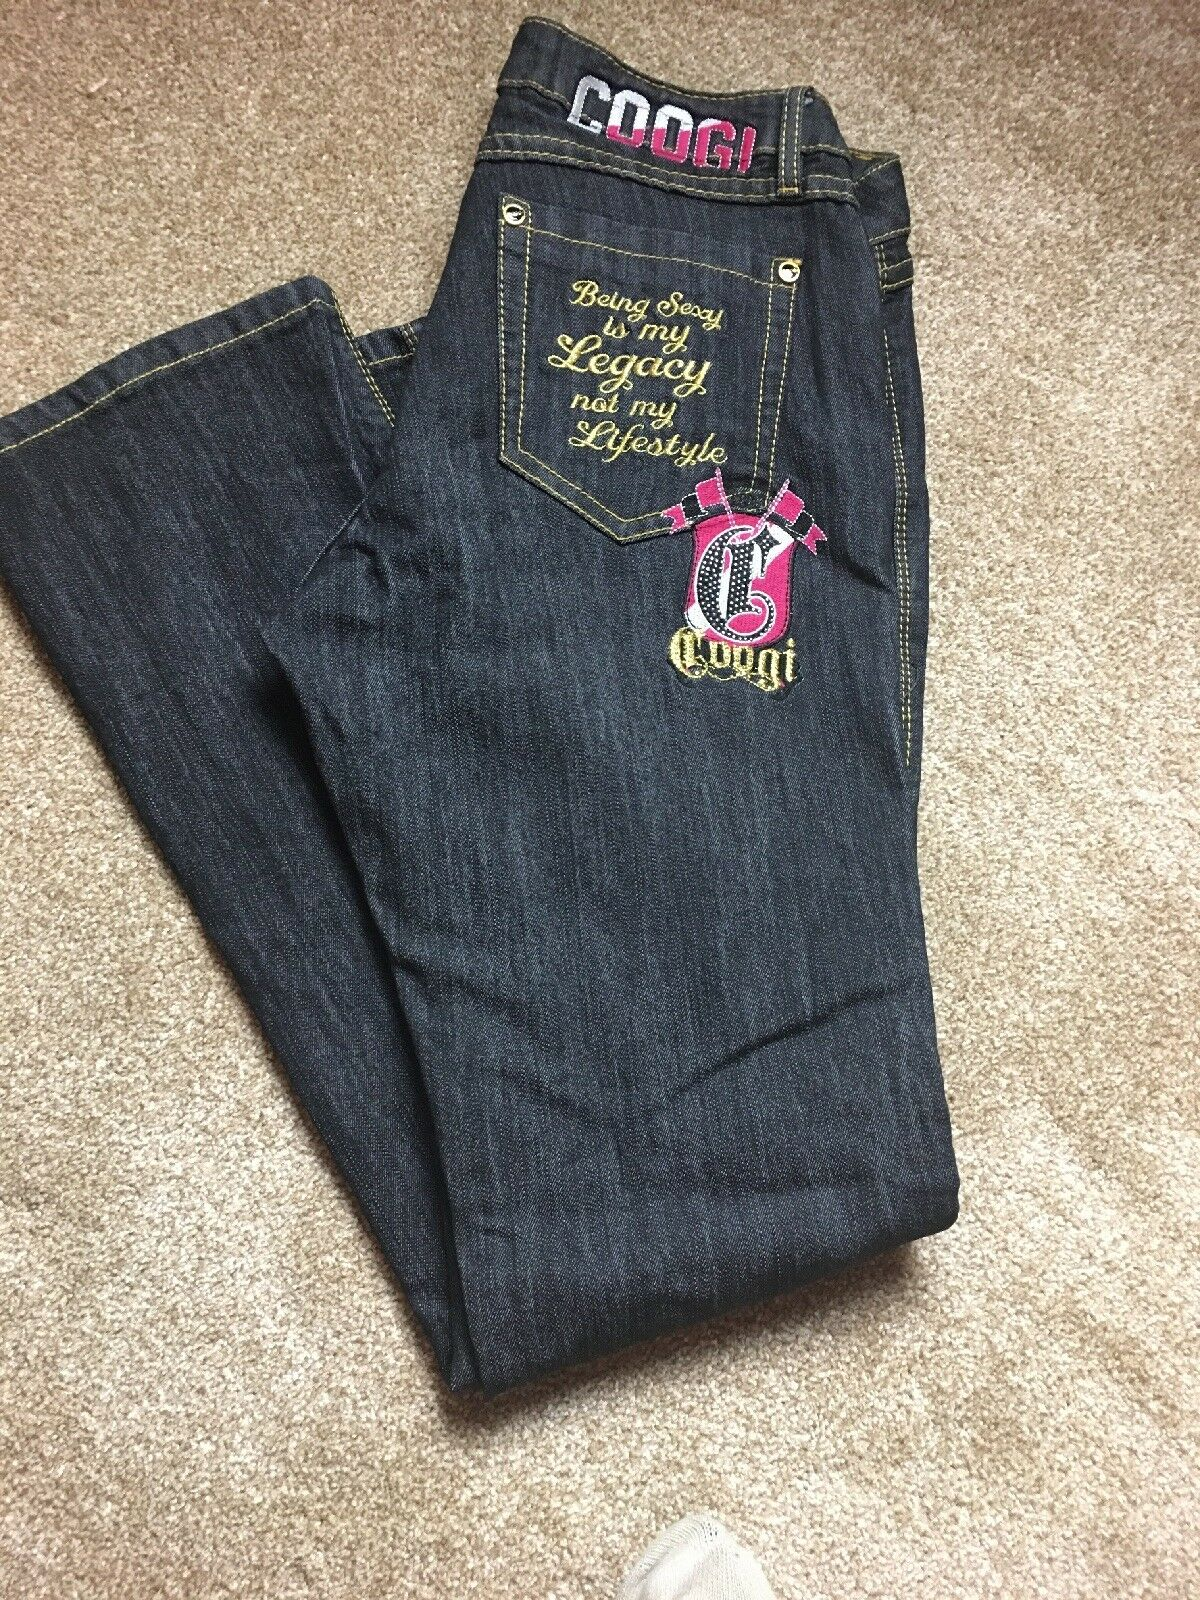 Coogi Jeans (Size 9 10)